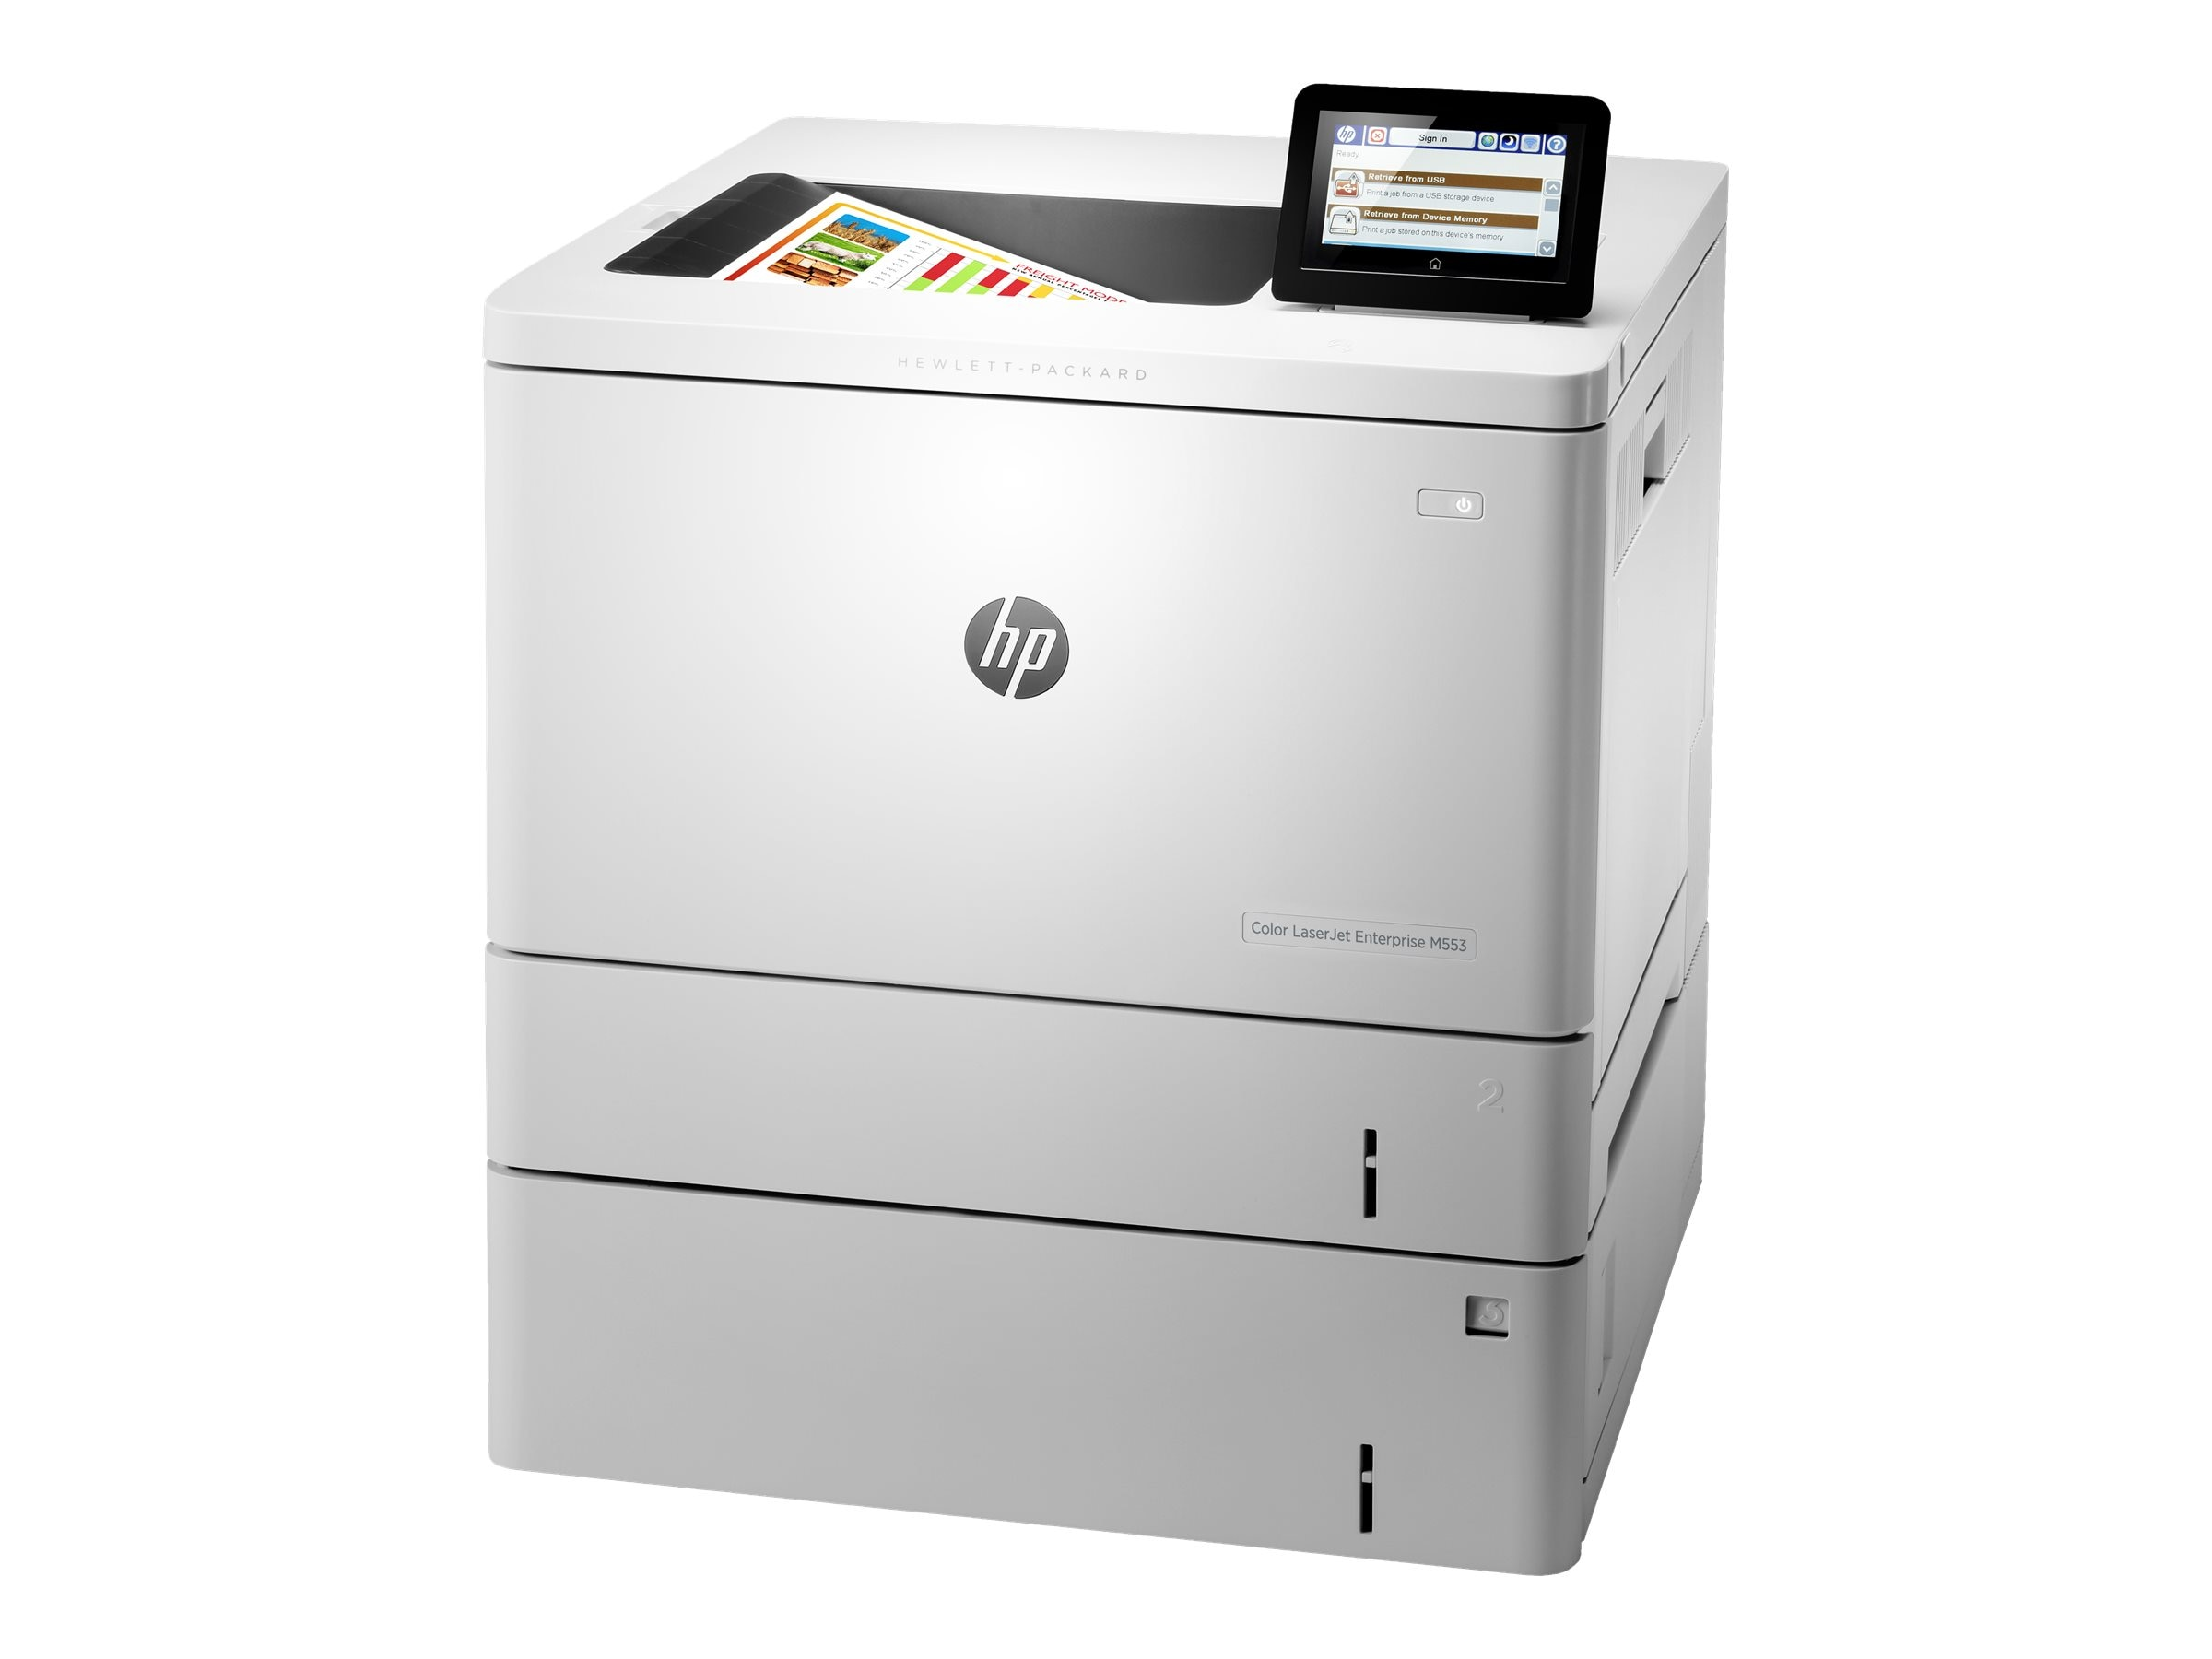 HP Color LaserJet Managed M553xm Printer, B5L39A#BGJ, 20982945, Printers - Laser & LED (color)